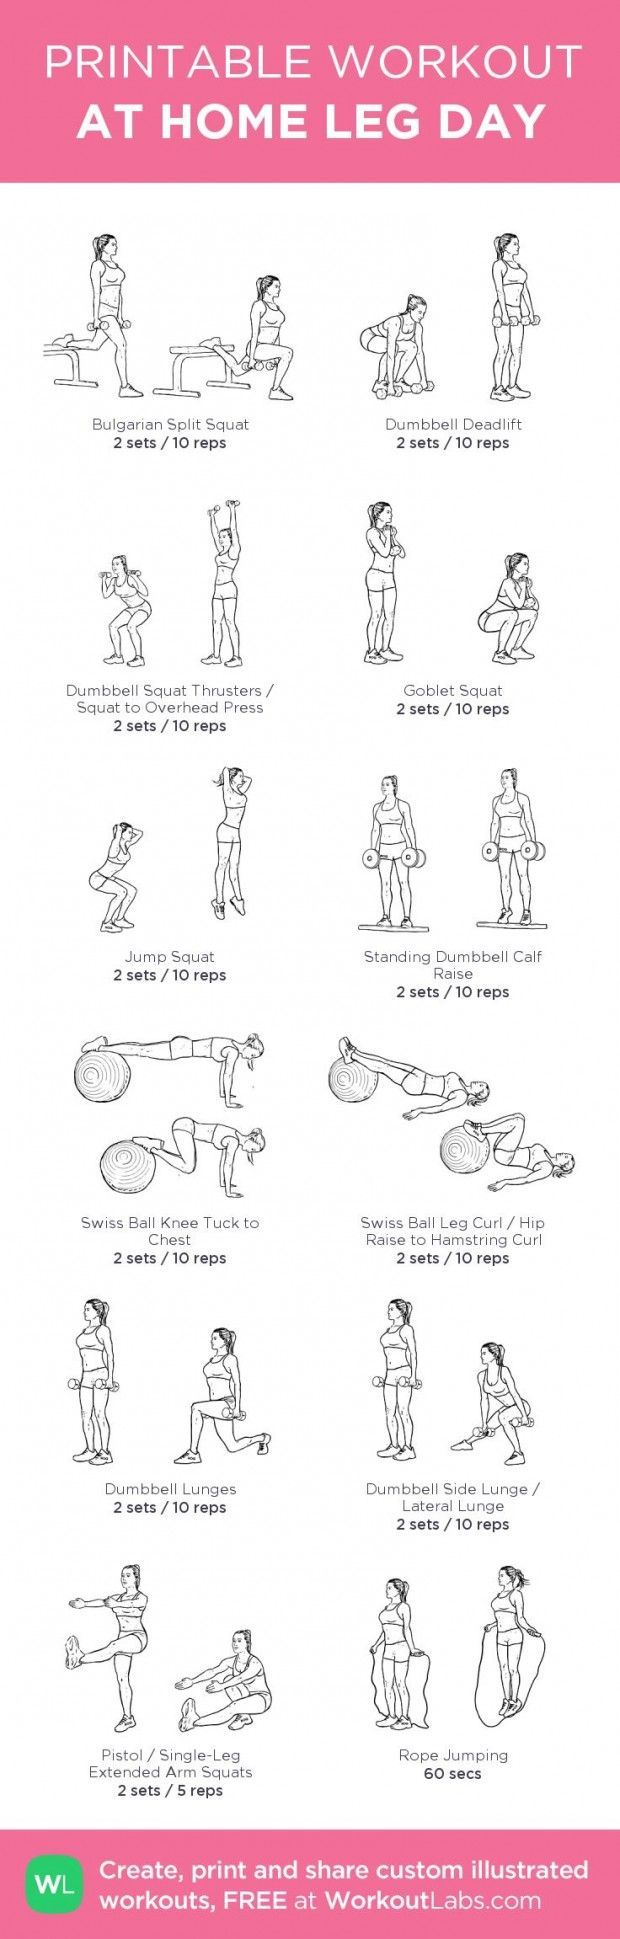 12 At Home Leg Day Workout for Women: